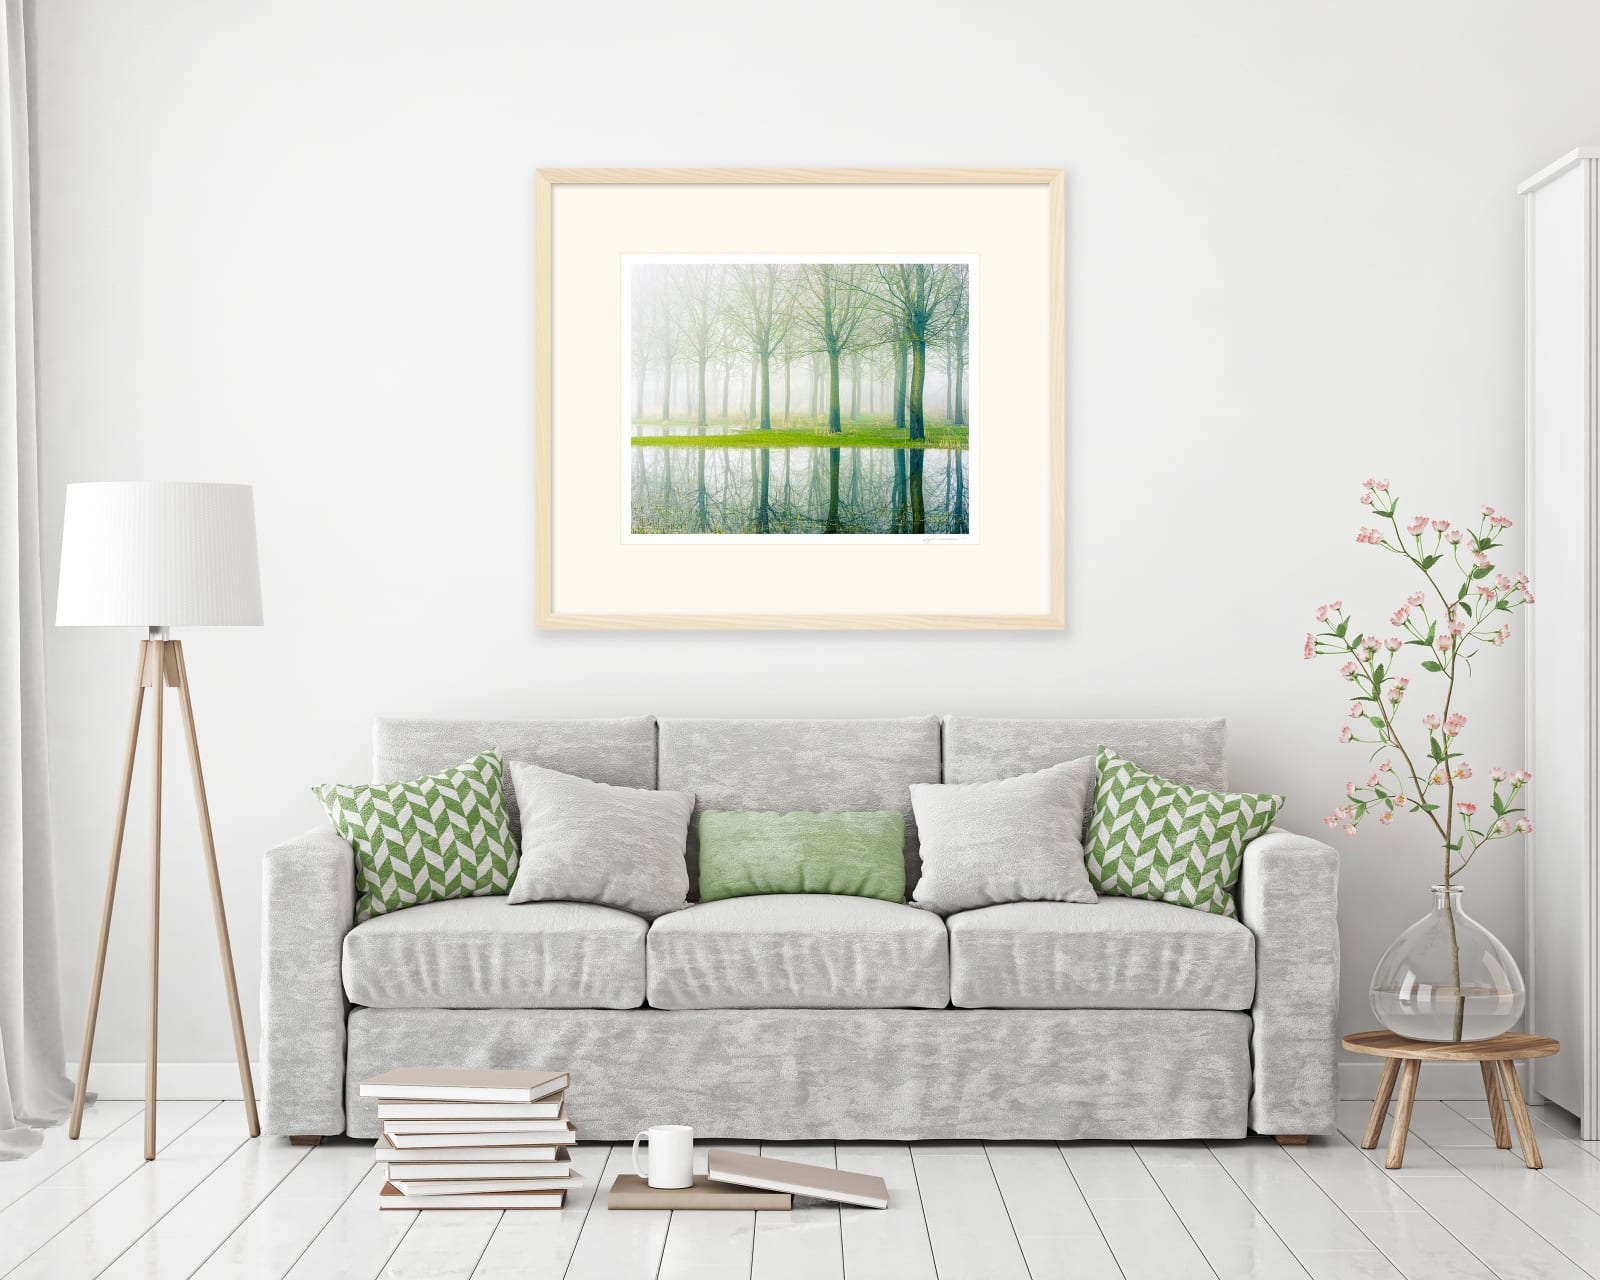 Traditional window mounted fine art print framed in limed ash behind white water glass